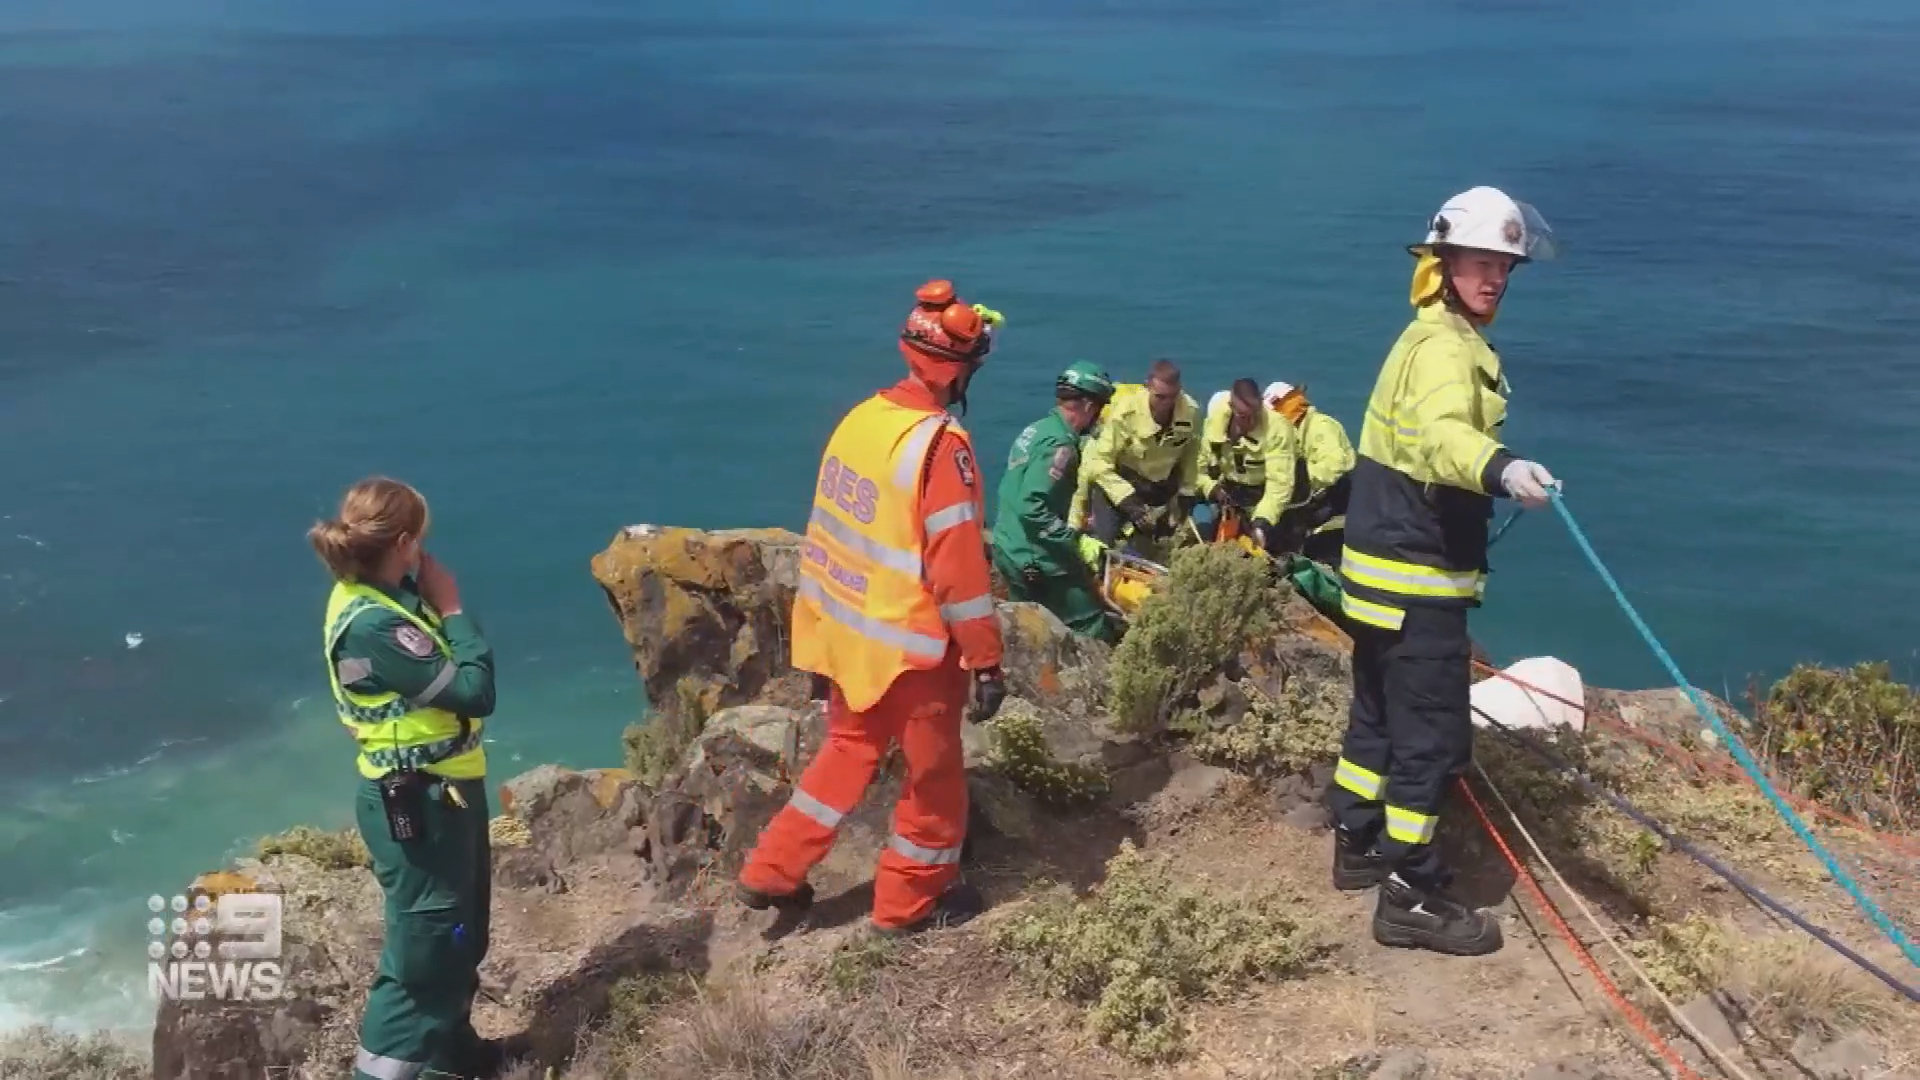 Injured paraglider has been pulled to safety after crashing into a rocky cliff